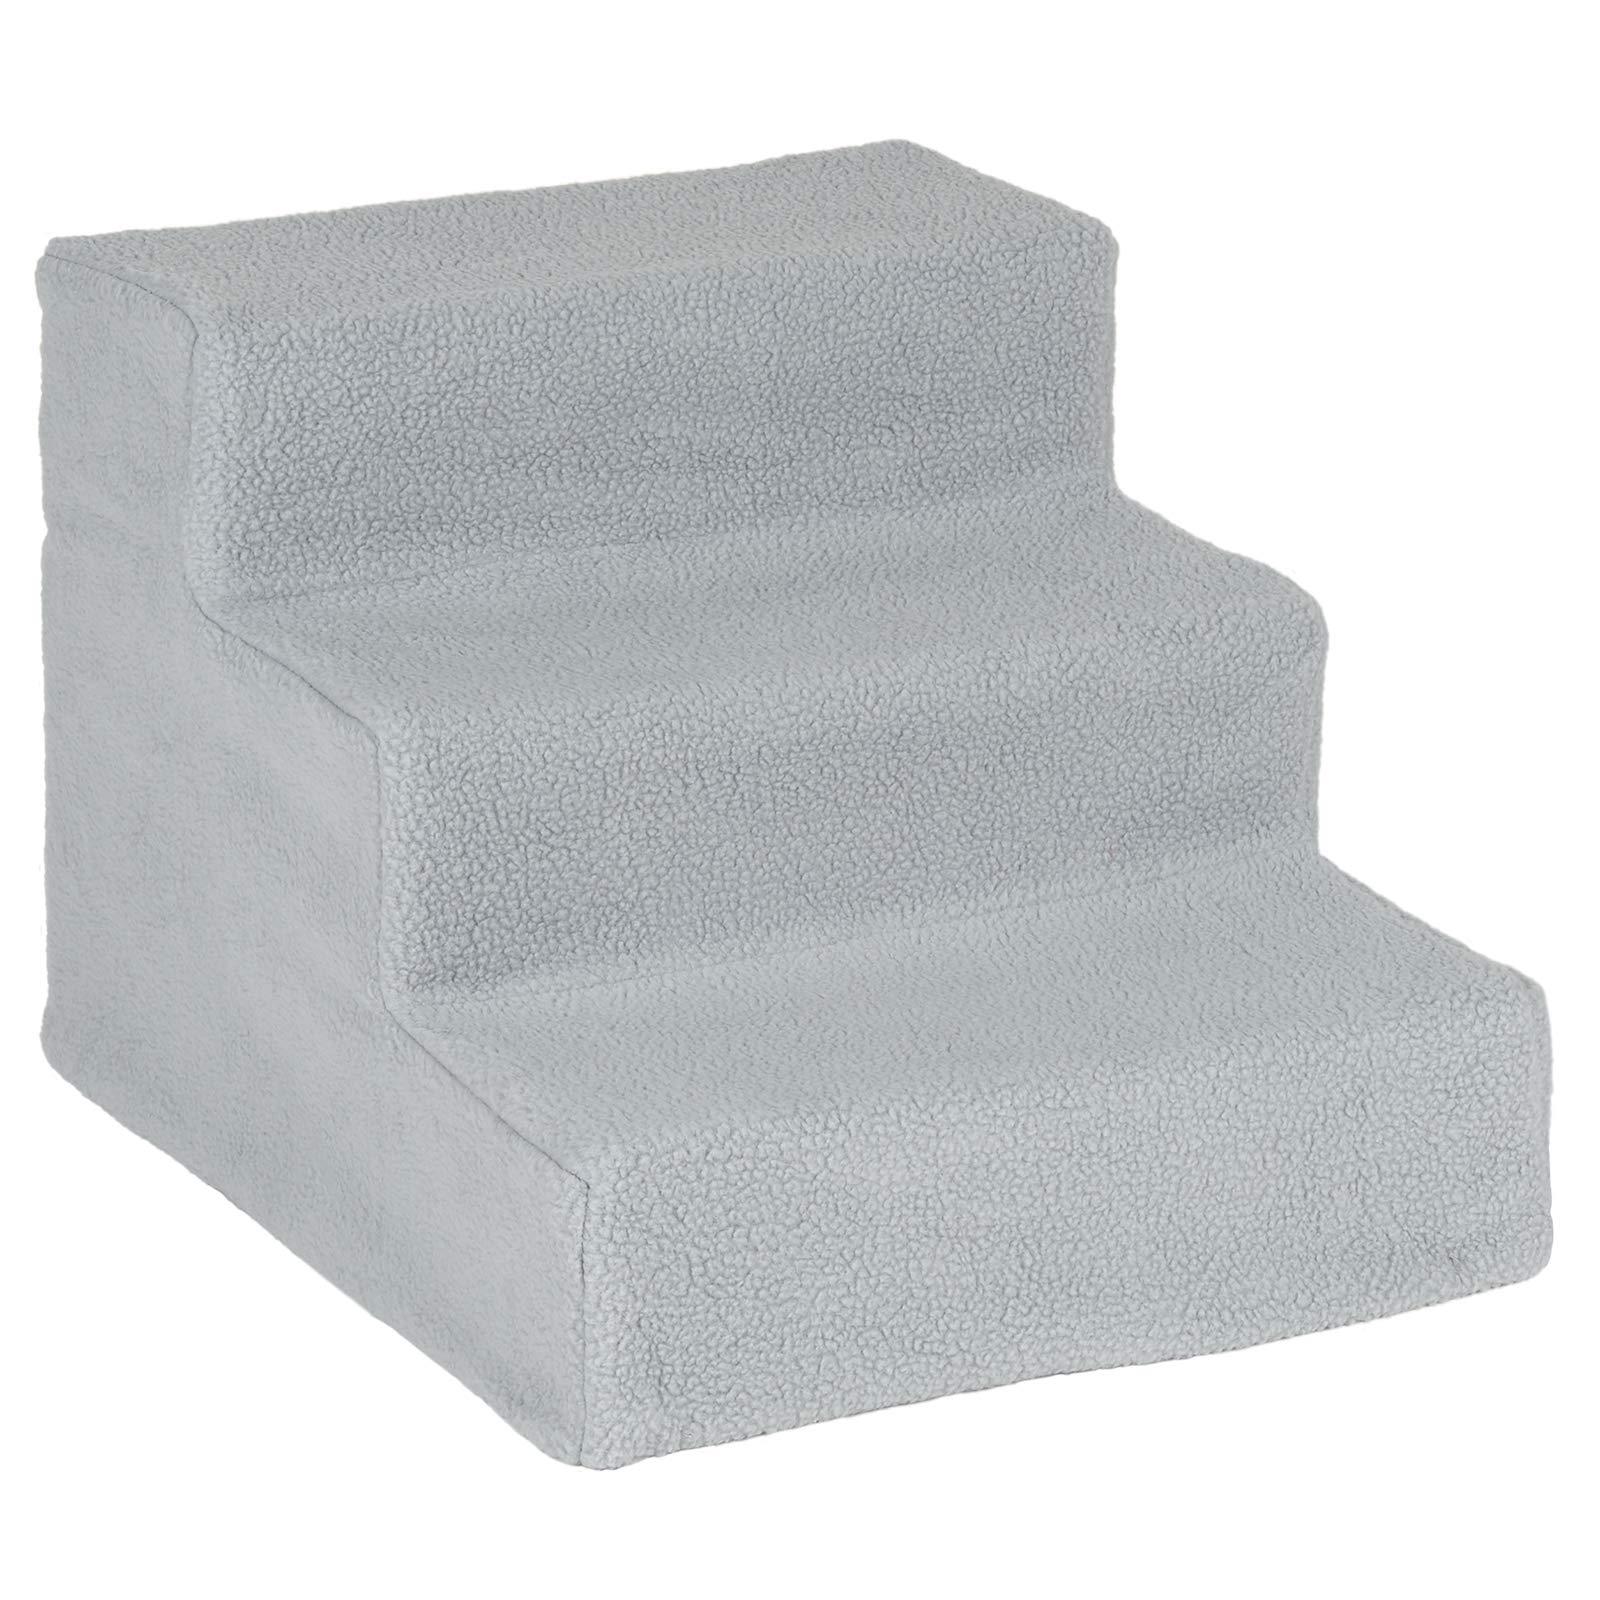 Me and My Easy Climb Fleece Covered Pet Stairs – Grey